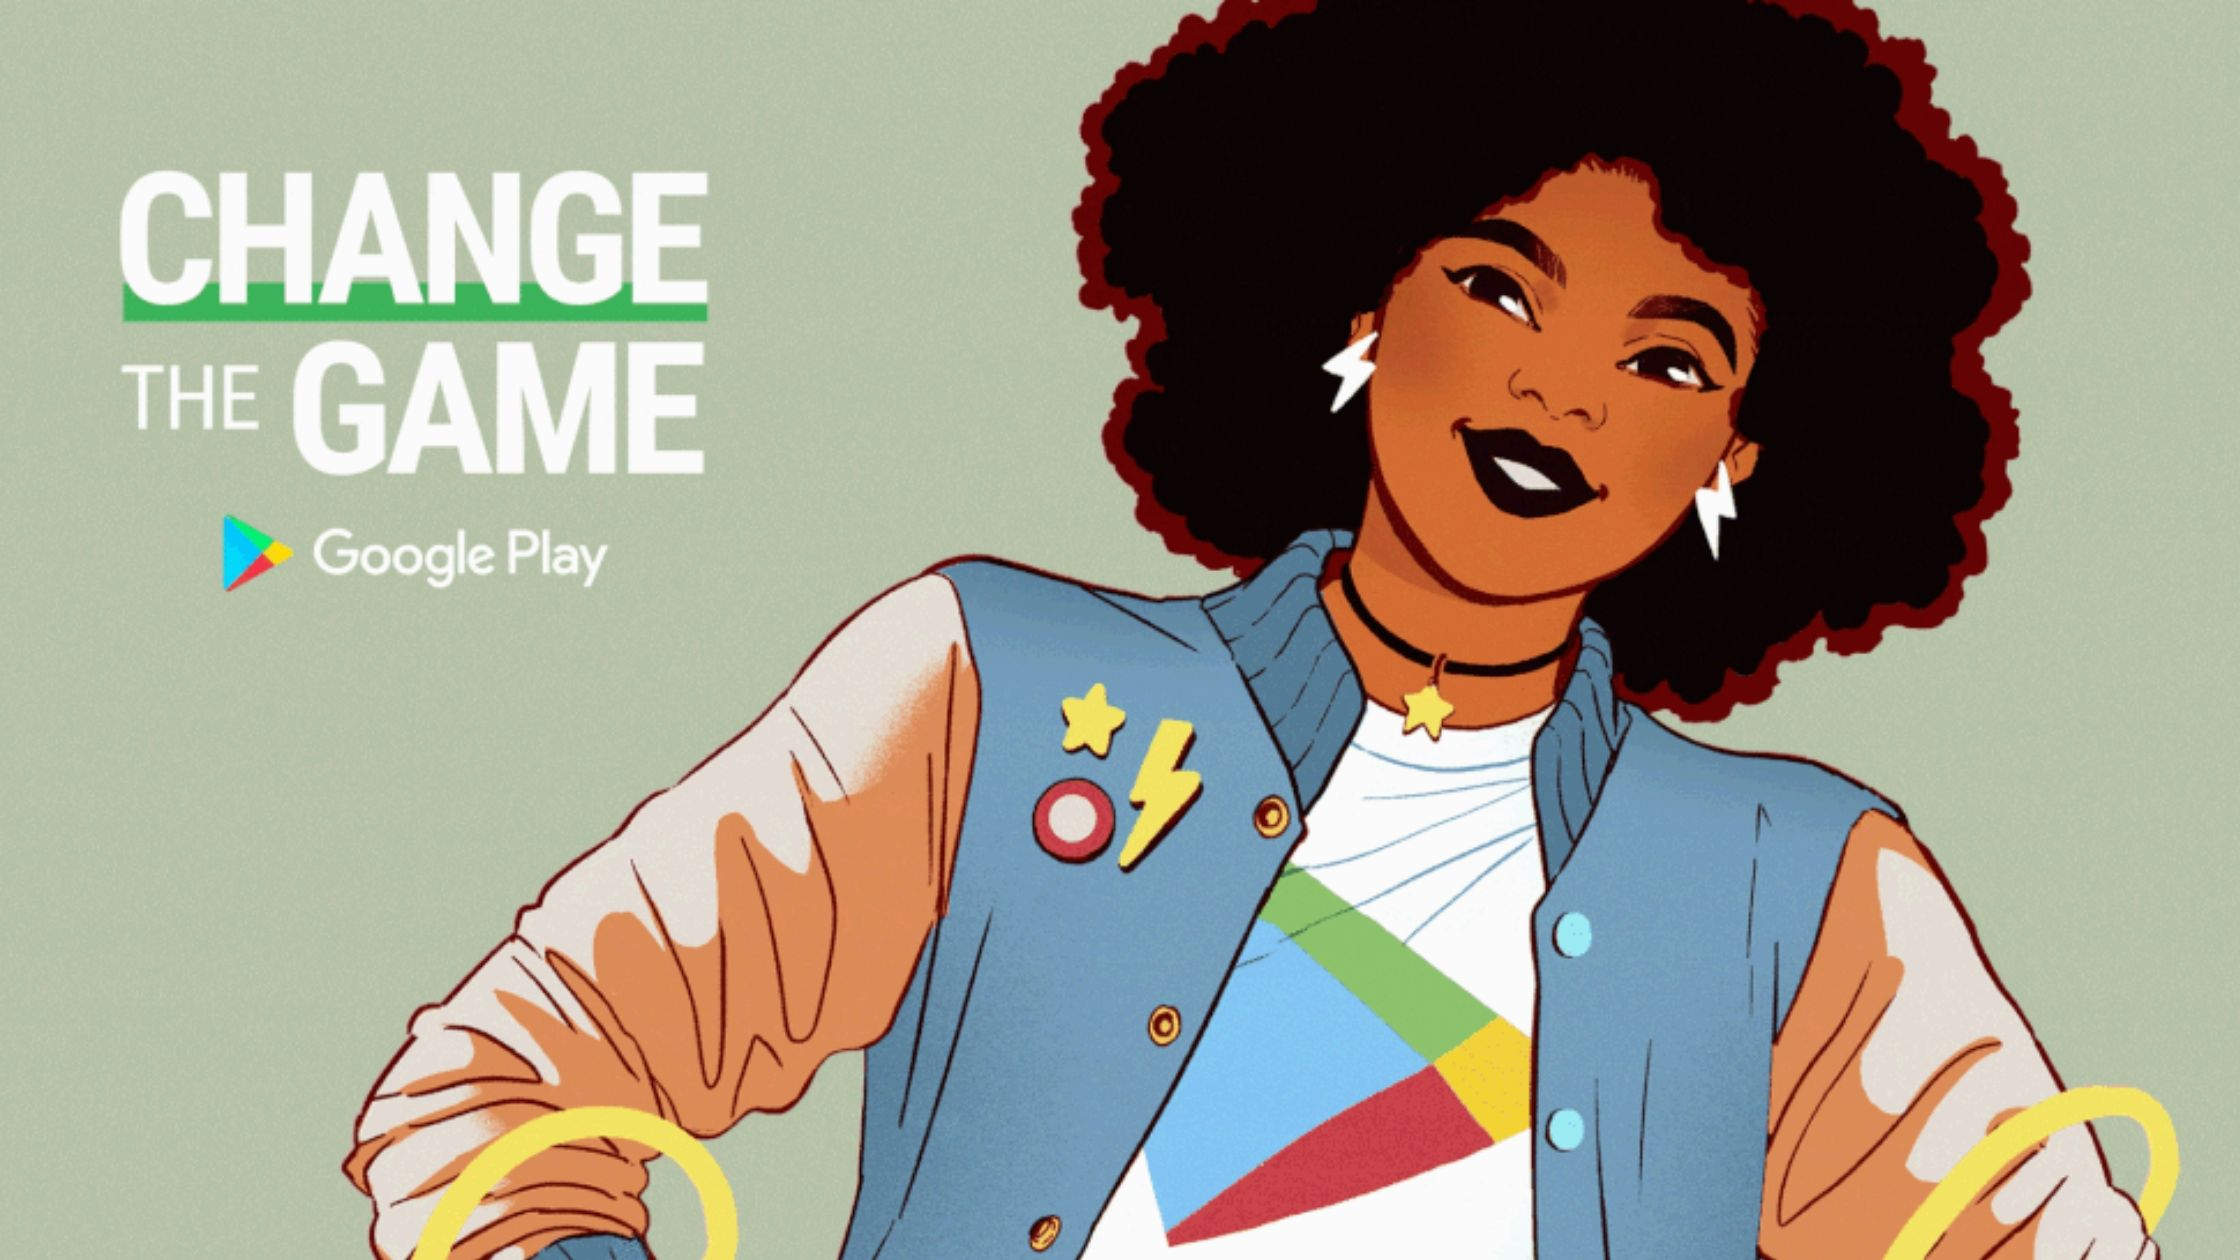 Google's Change the game design challenge